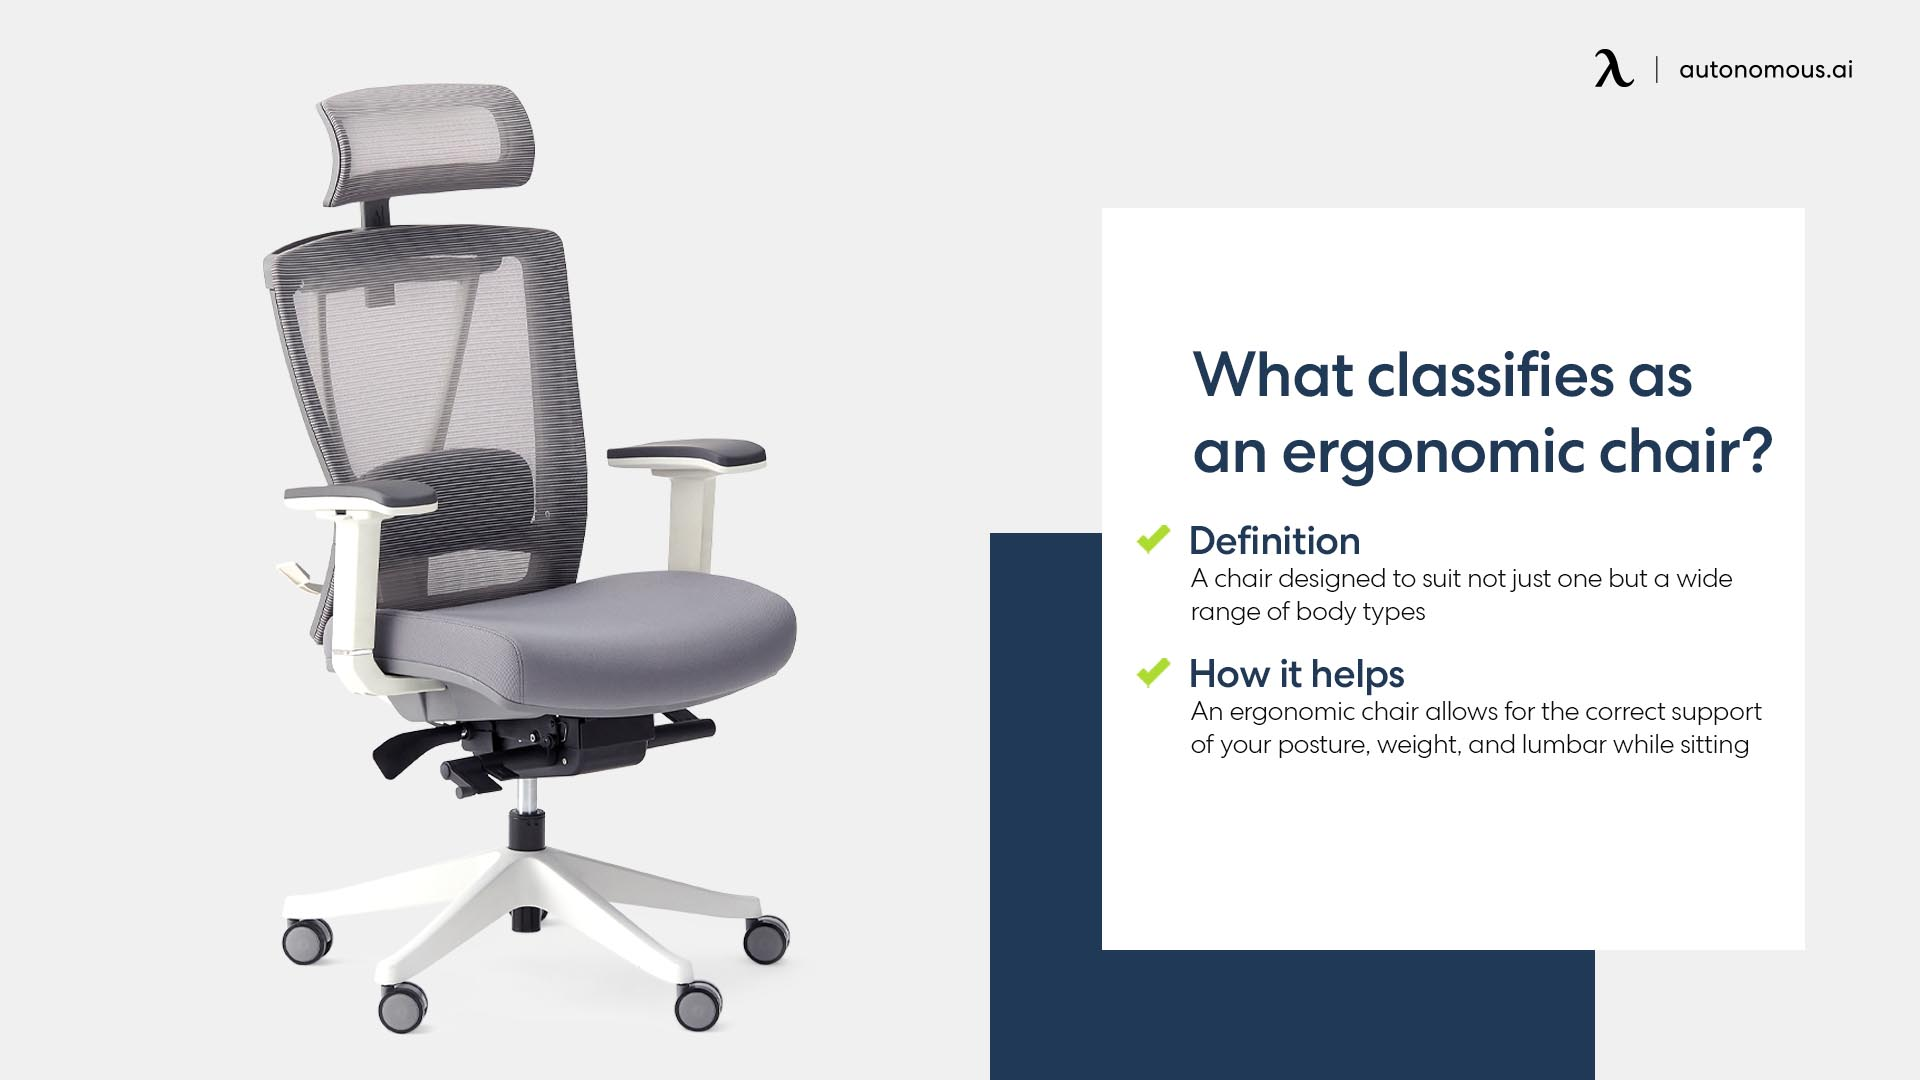 Photo of classifies as an ergonomic chair features